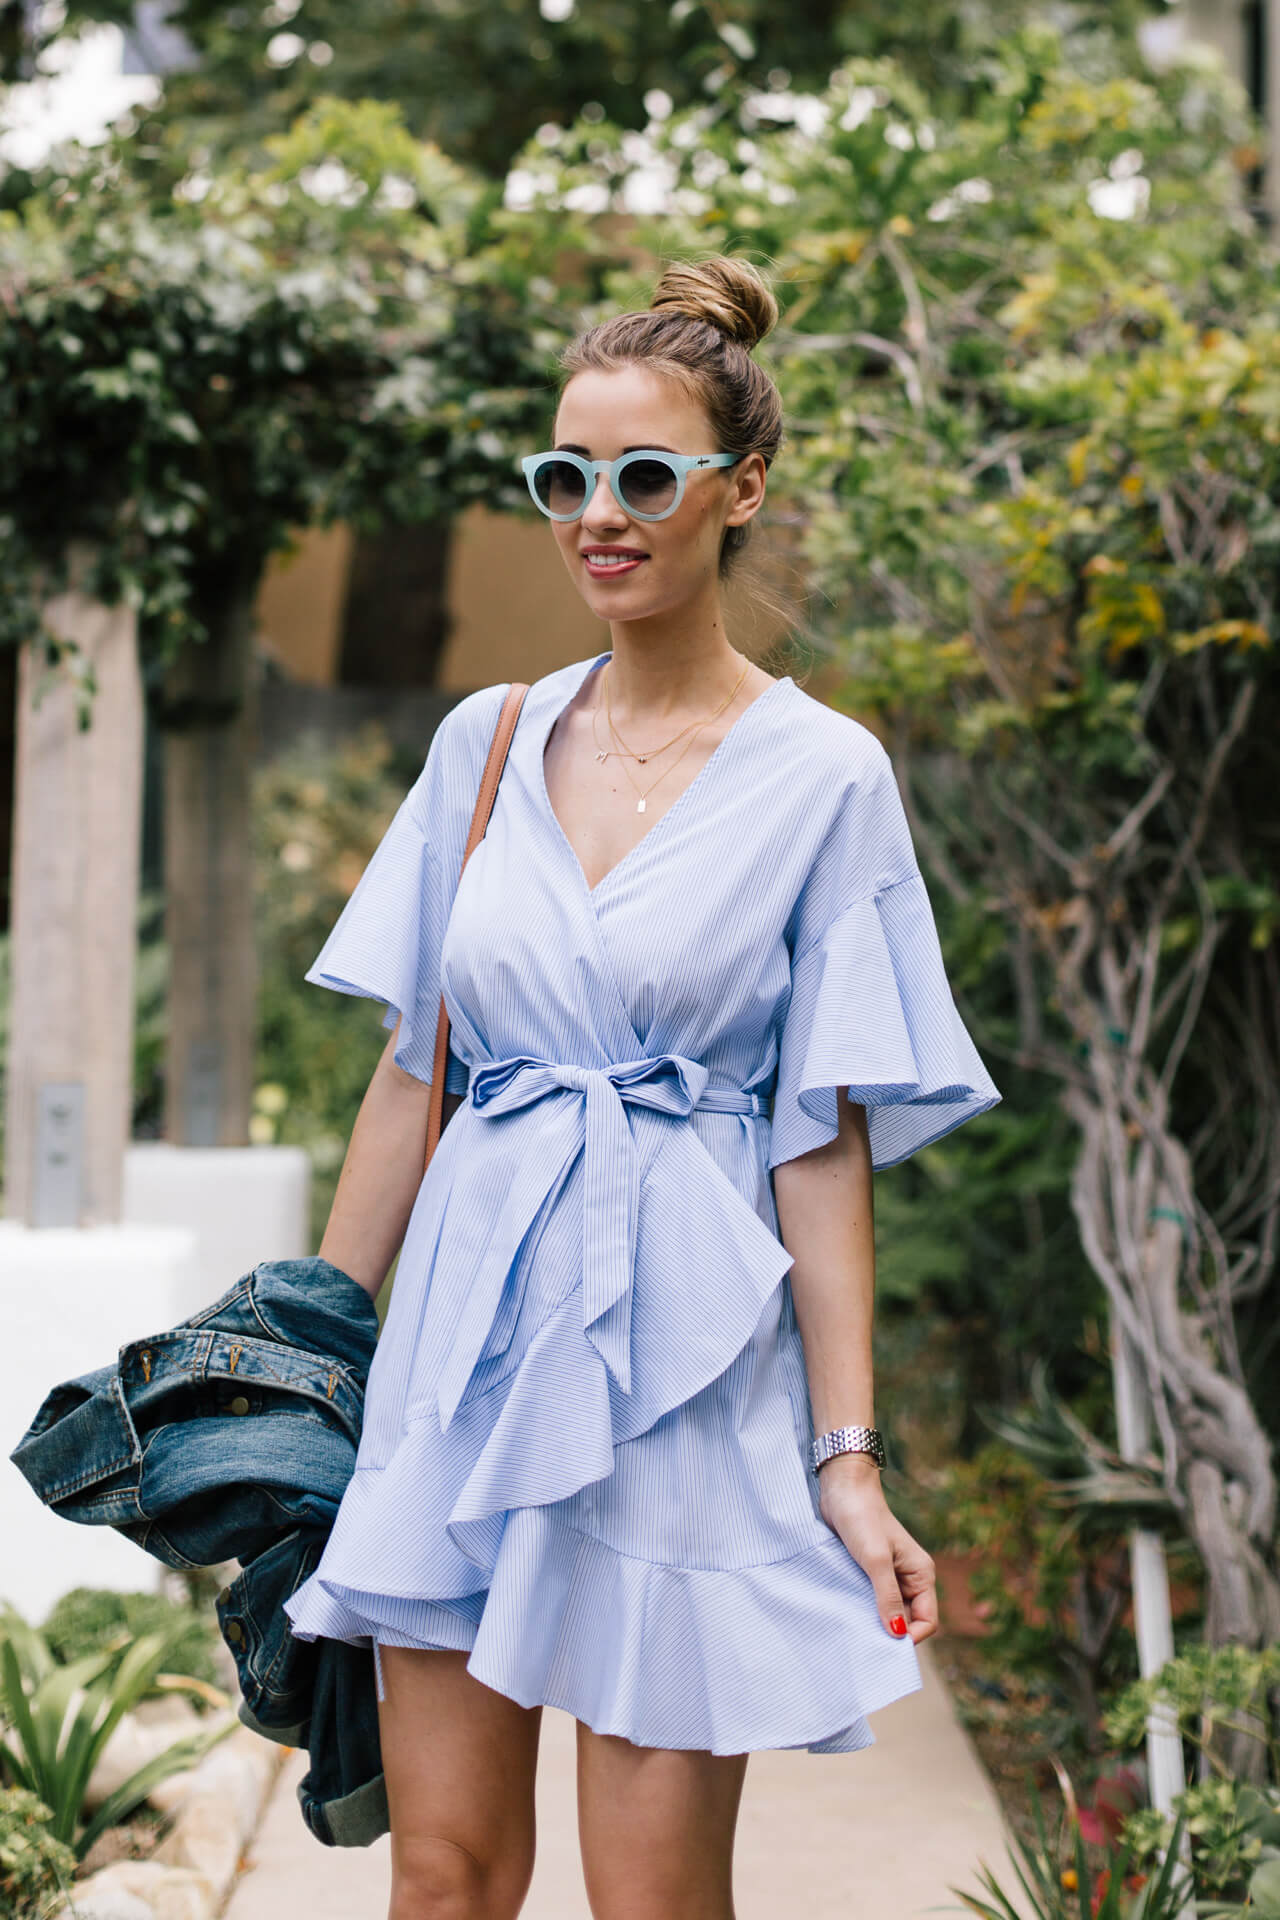 styling a wrap dress for summer